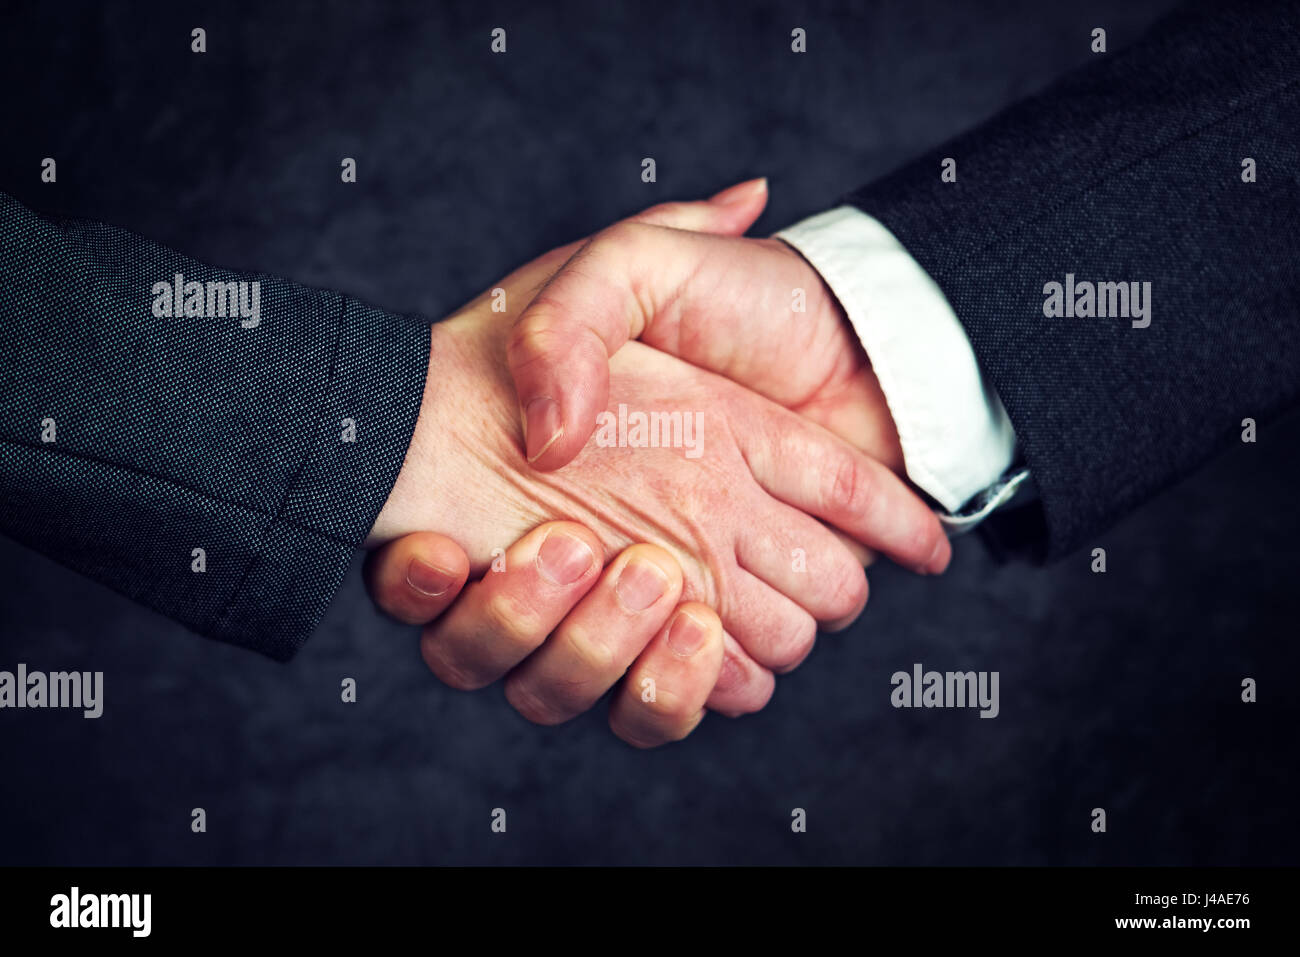 Joint enterprise handshake over business agreement, male and female businesspeople shaking hands after forming a - Stock Image